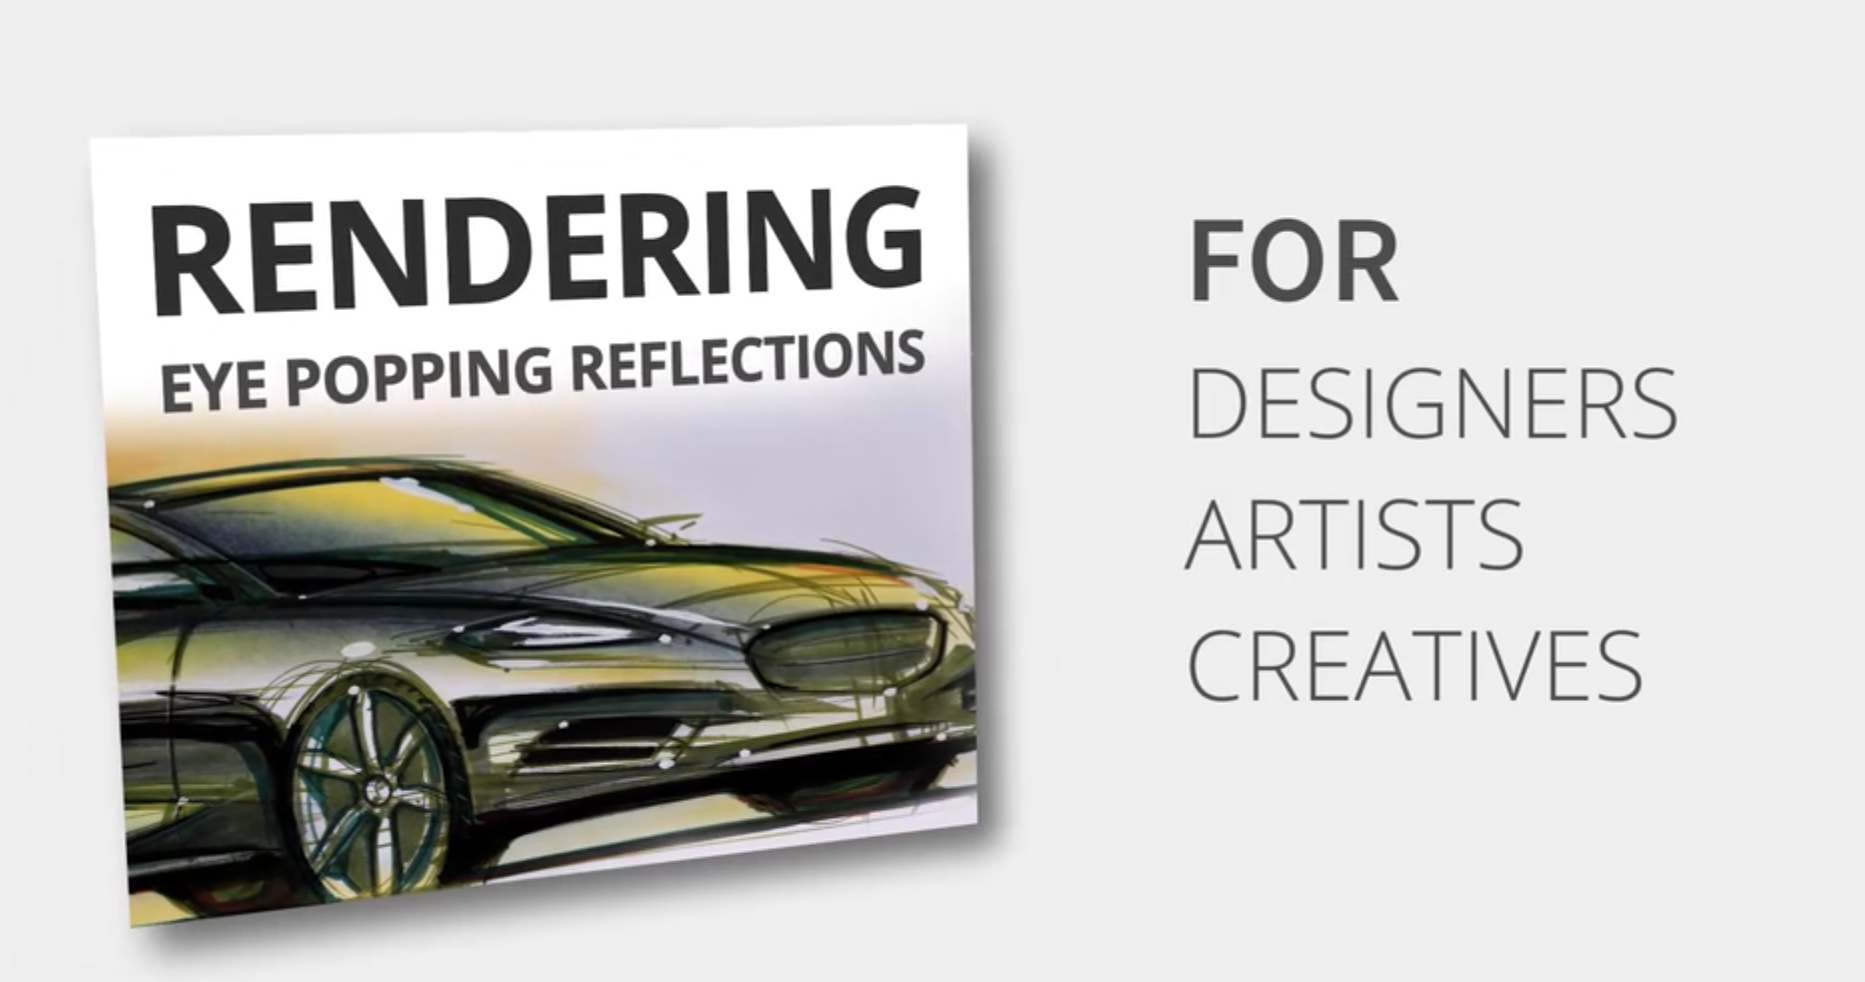 LIMITED SEATING! RENDERING EYE POPPING REFLECTIONS: COURSE START DATE APRIL 10, 2017 post image